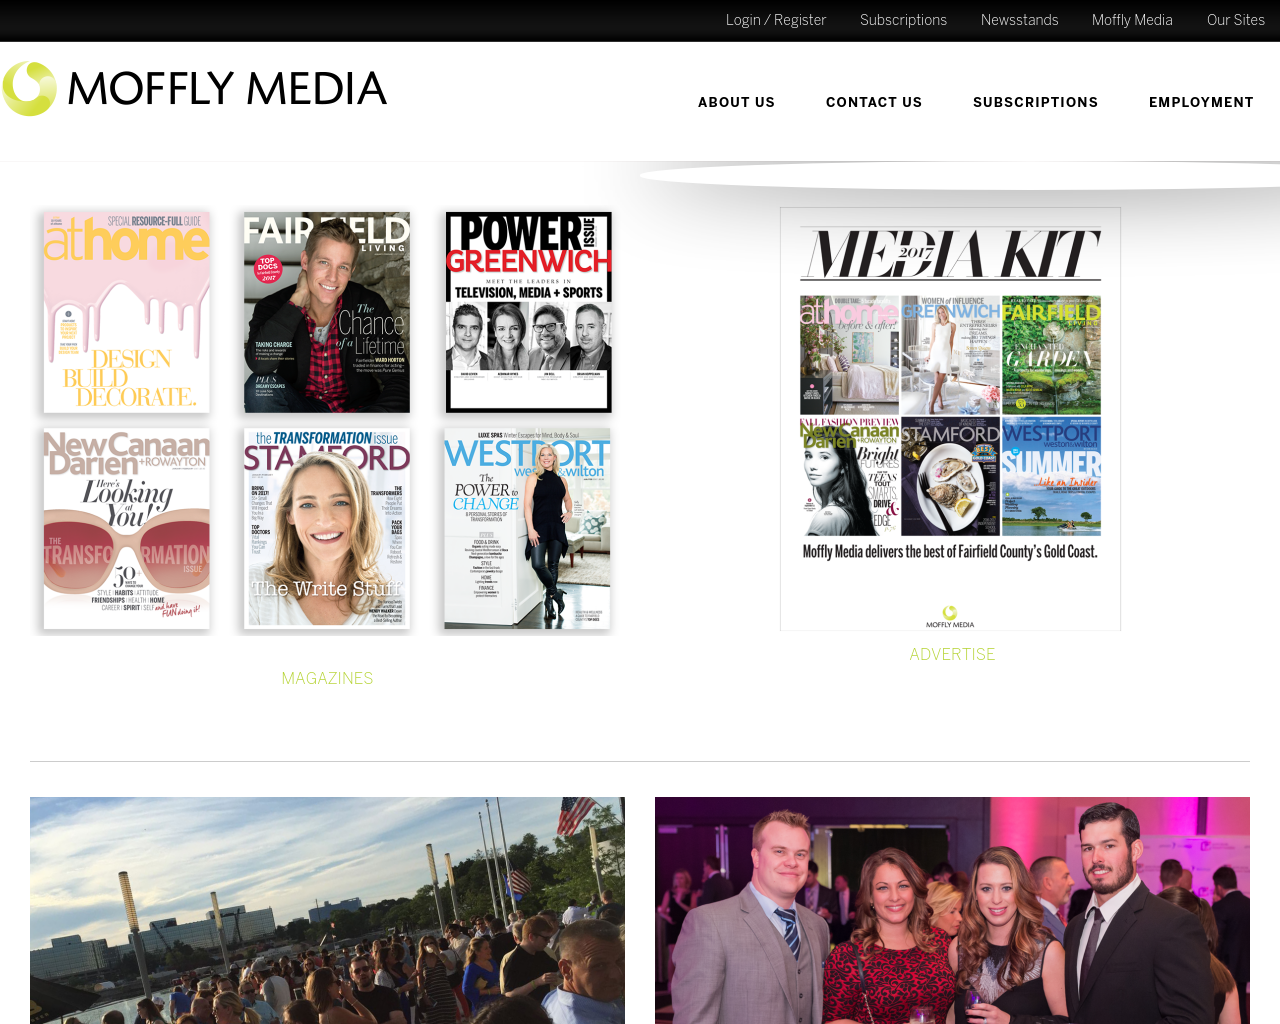 Moffly-Media-Advertising-Reviews-Pricing